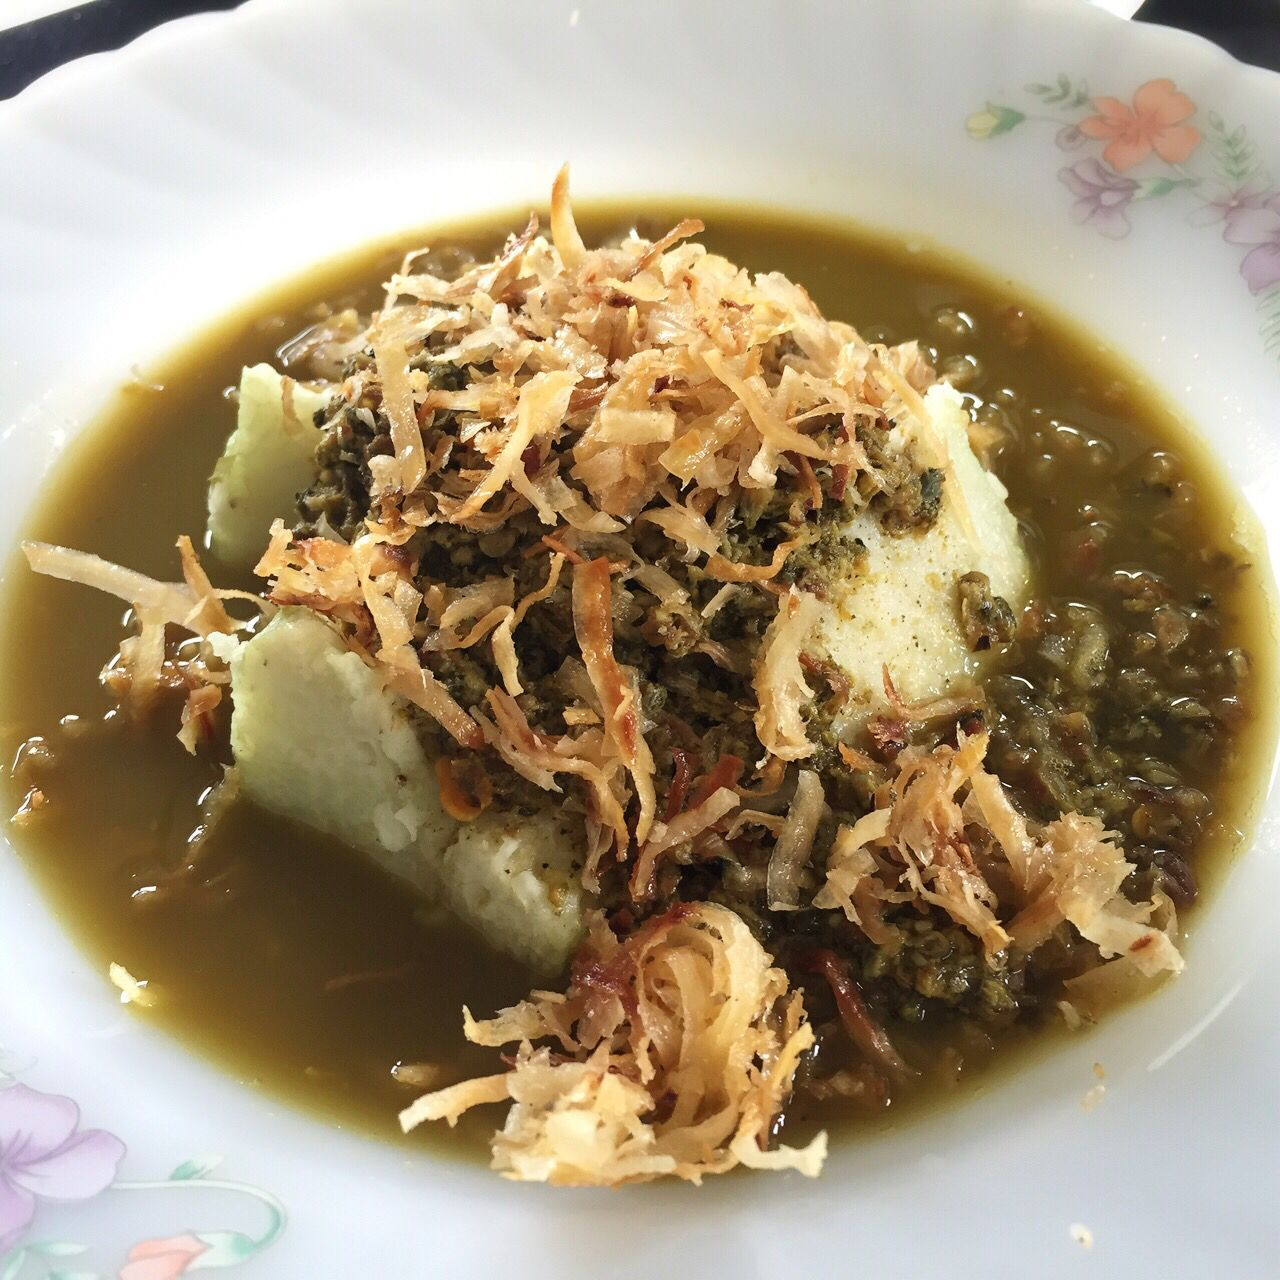 Kupang Is Traditional Food From Surabaya Made Of Tiny Little Mussels Ayam